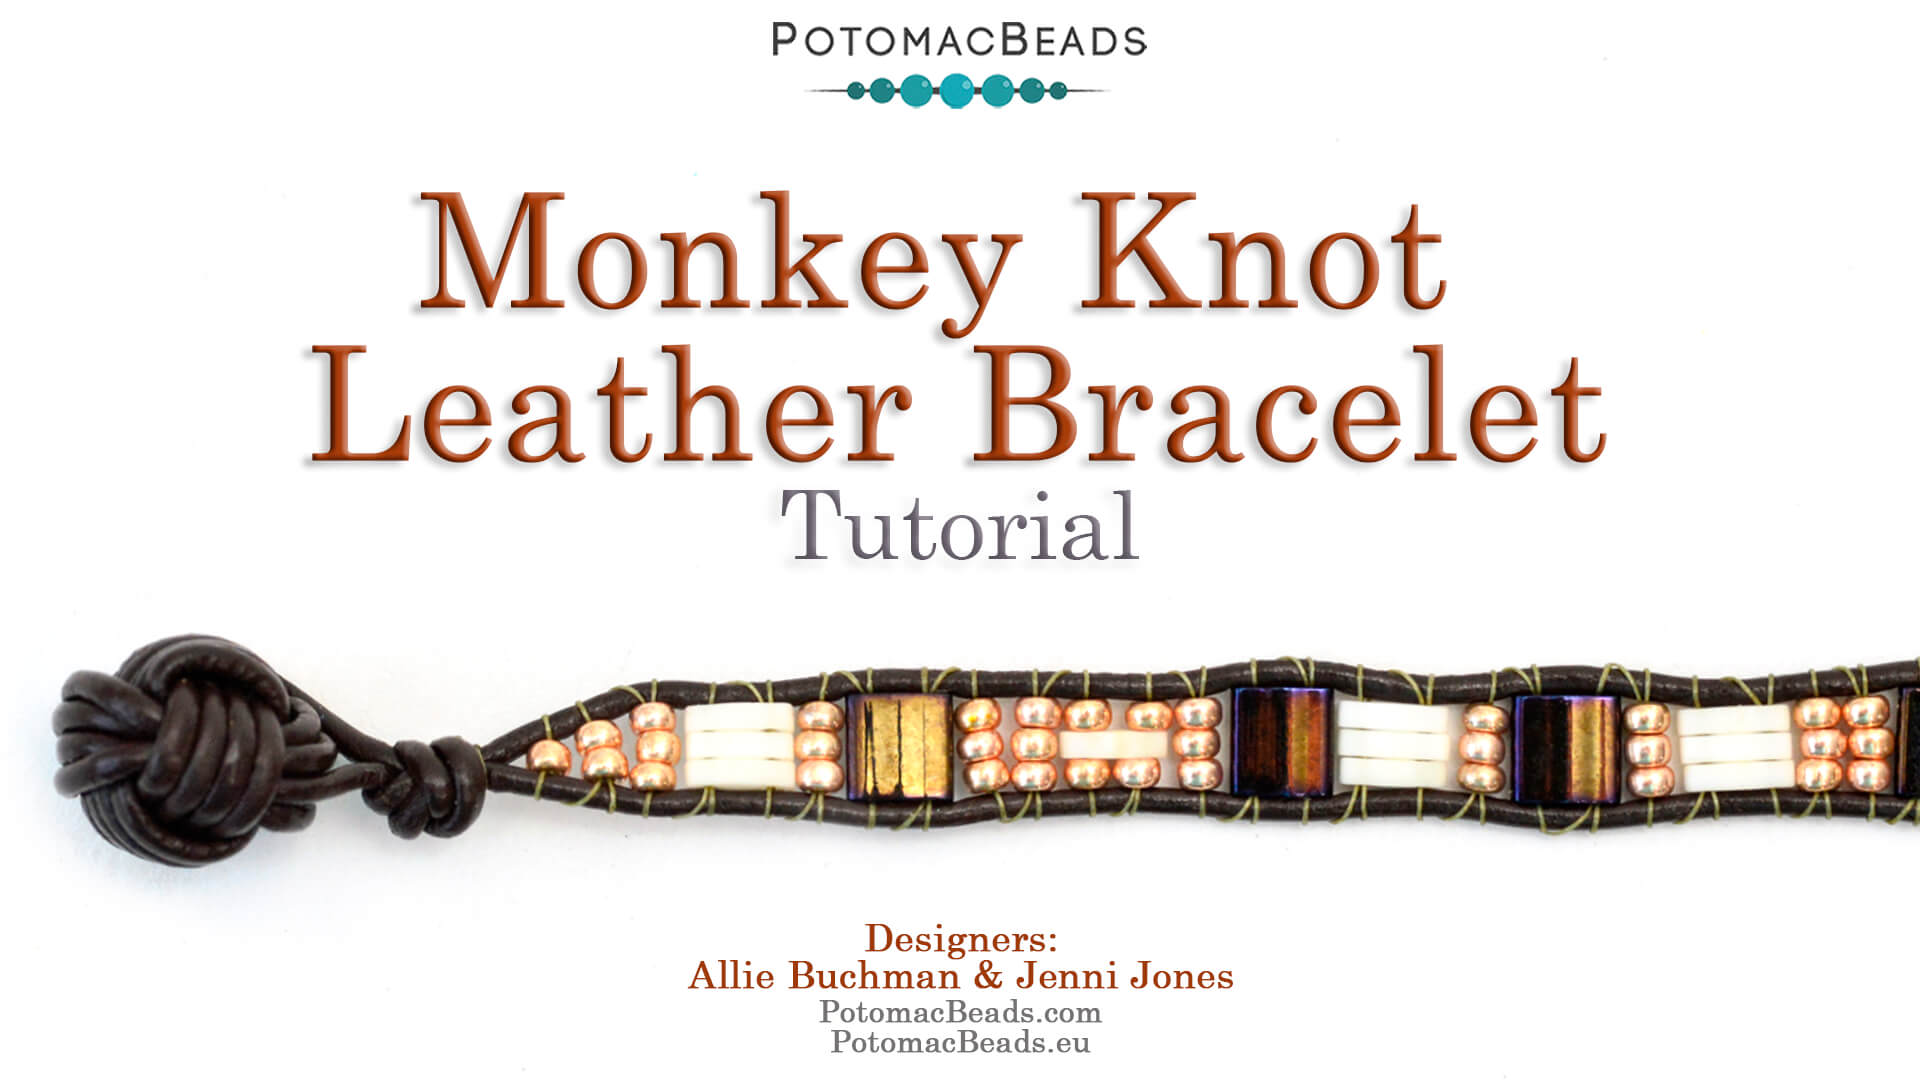 How to Bead / Videos Sorted by Beads / Seed Bead Only Videos / Monkey Knot Leather Bracelet Tutorial